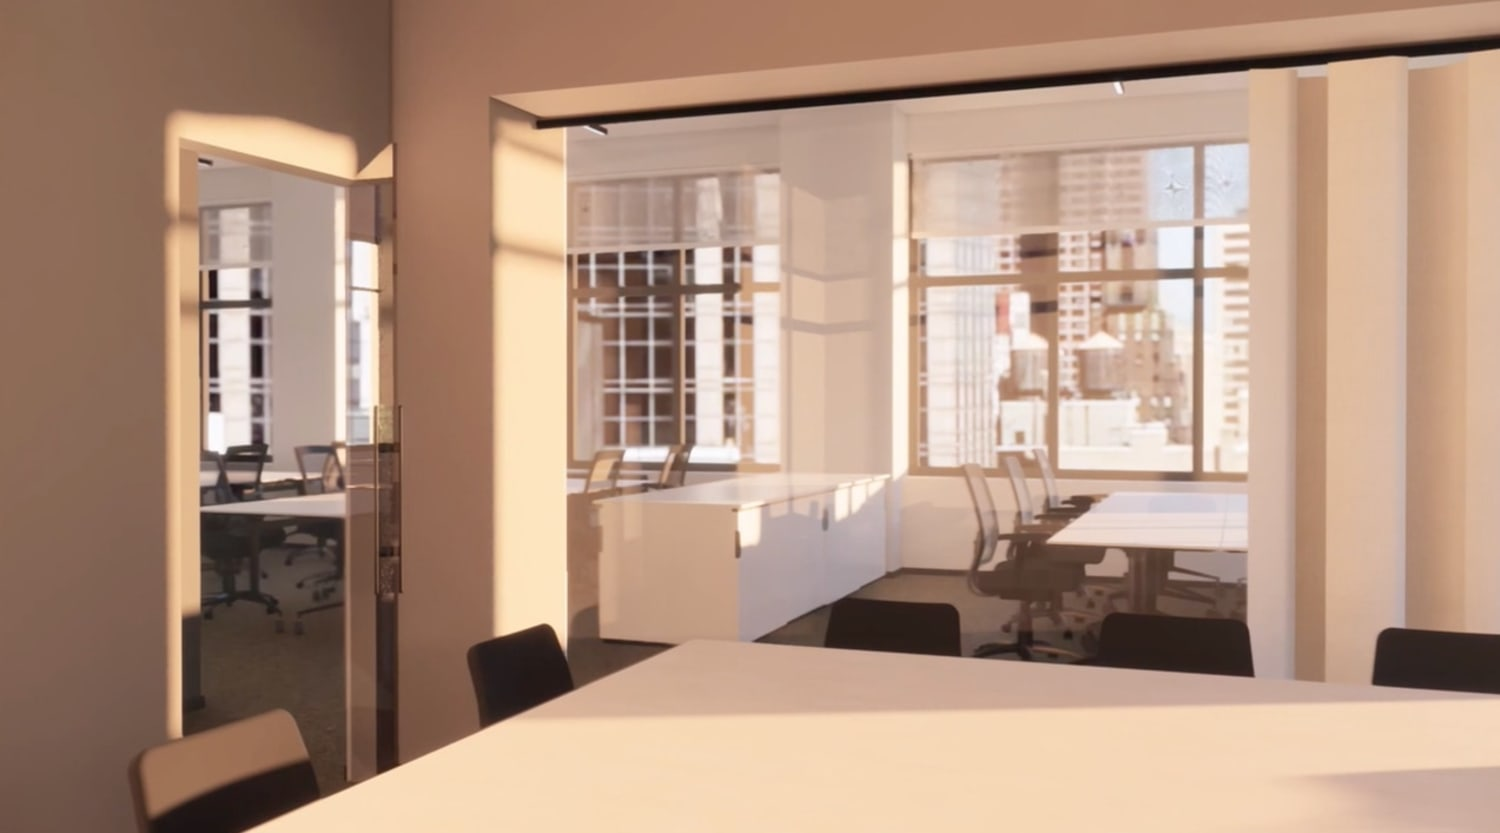 Coming Soon: 26 West 23rd, 5th Floor